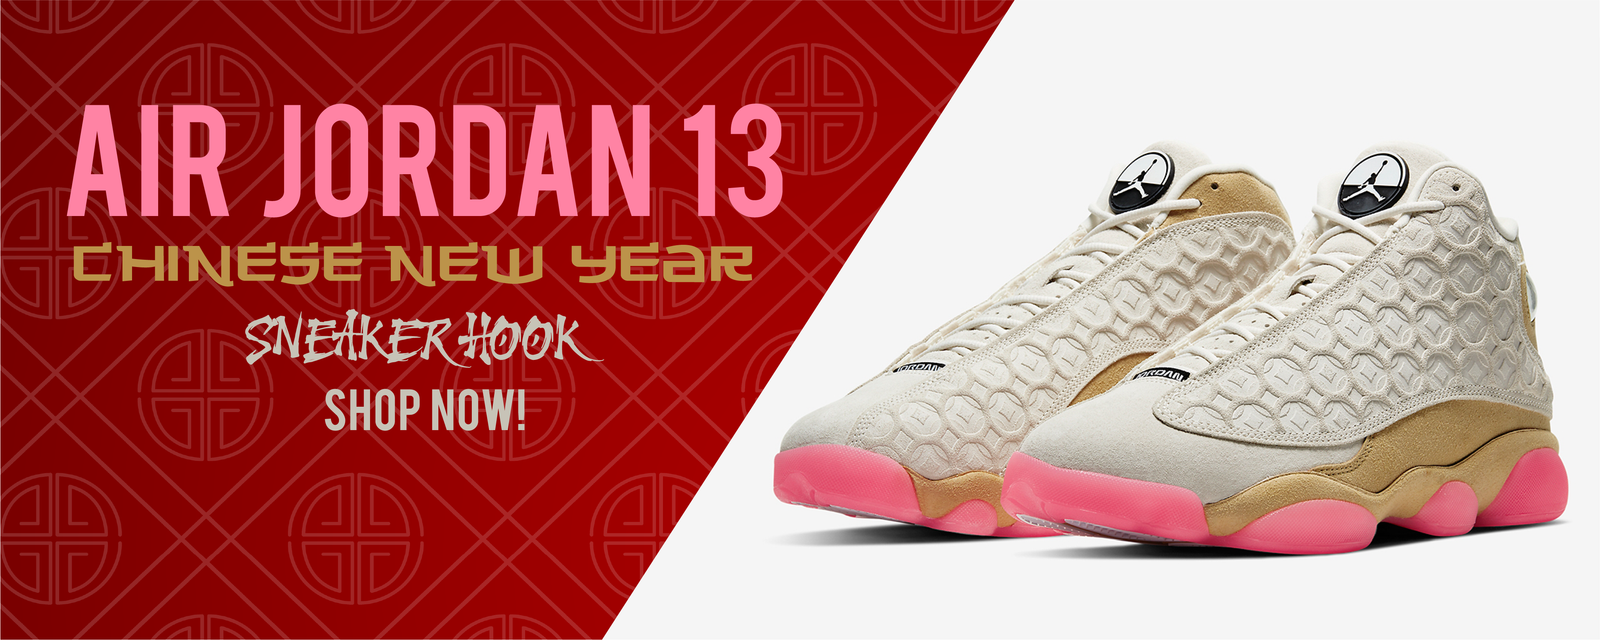 Clothing Made to Match Air Jordan 13 Chinese New Year Sneakers